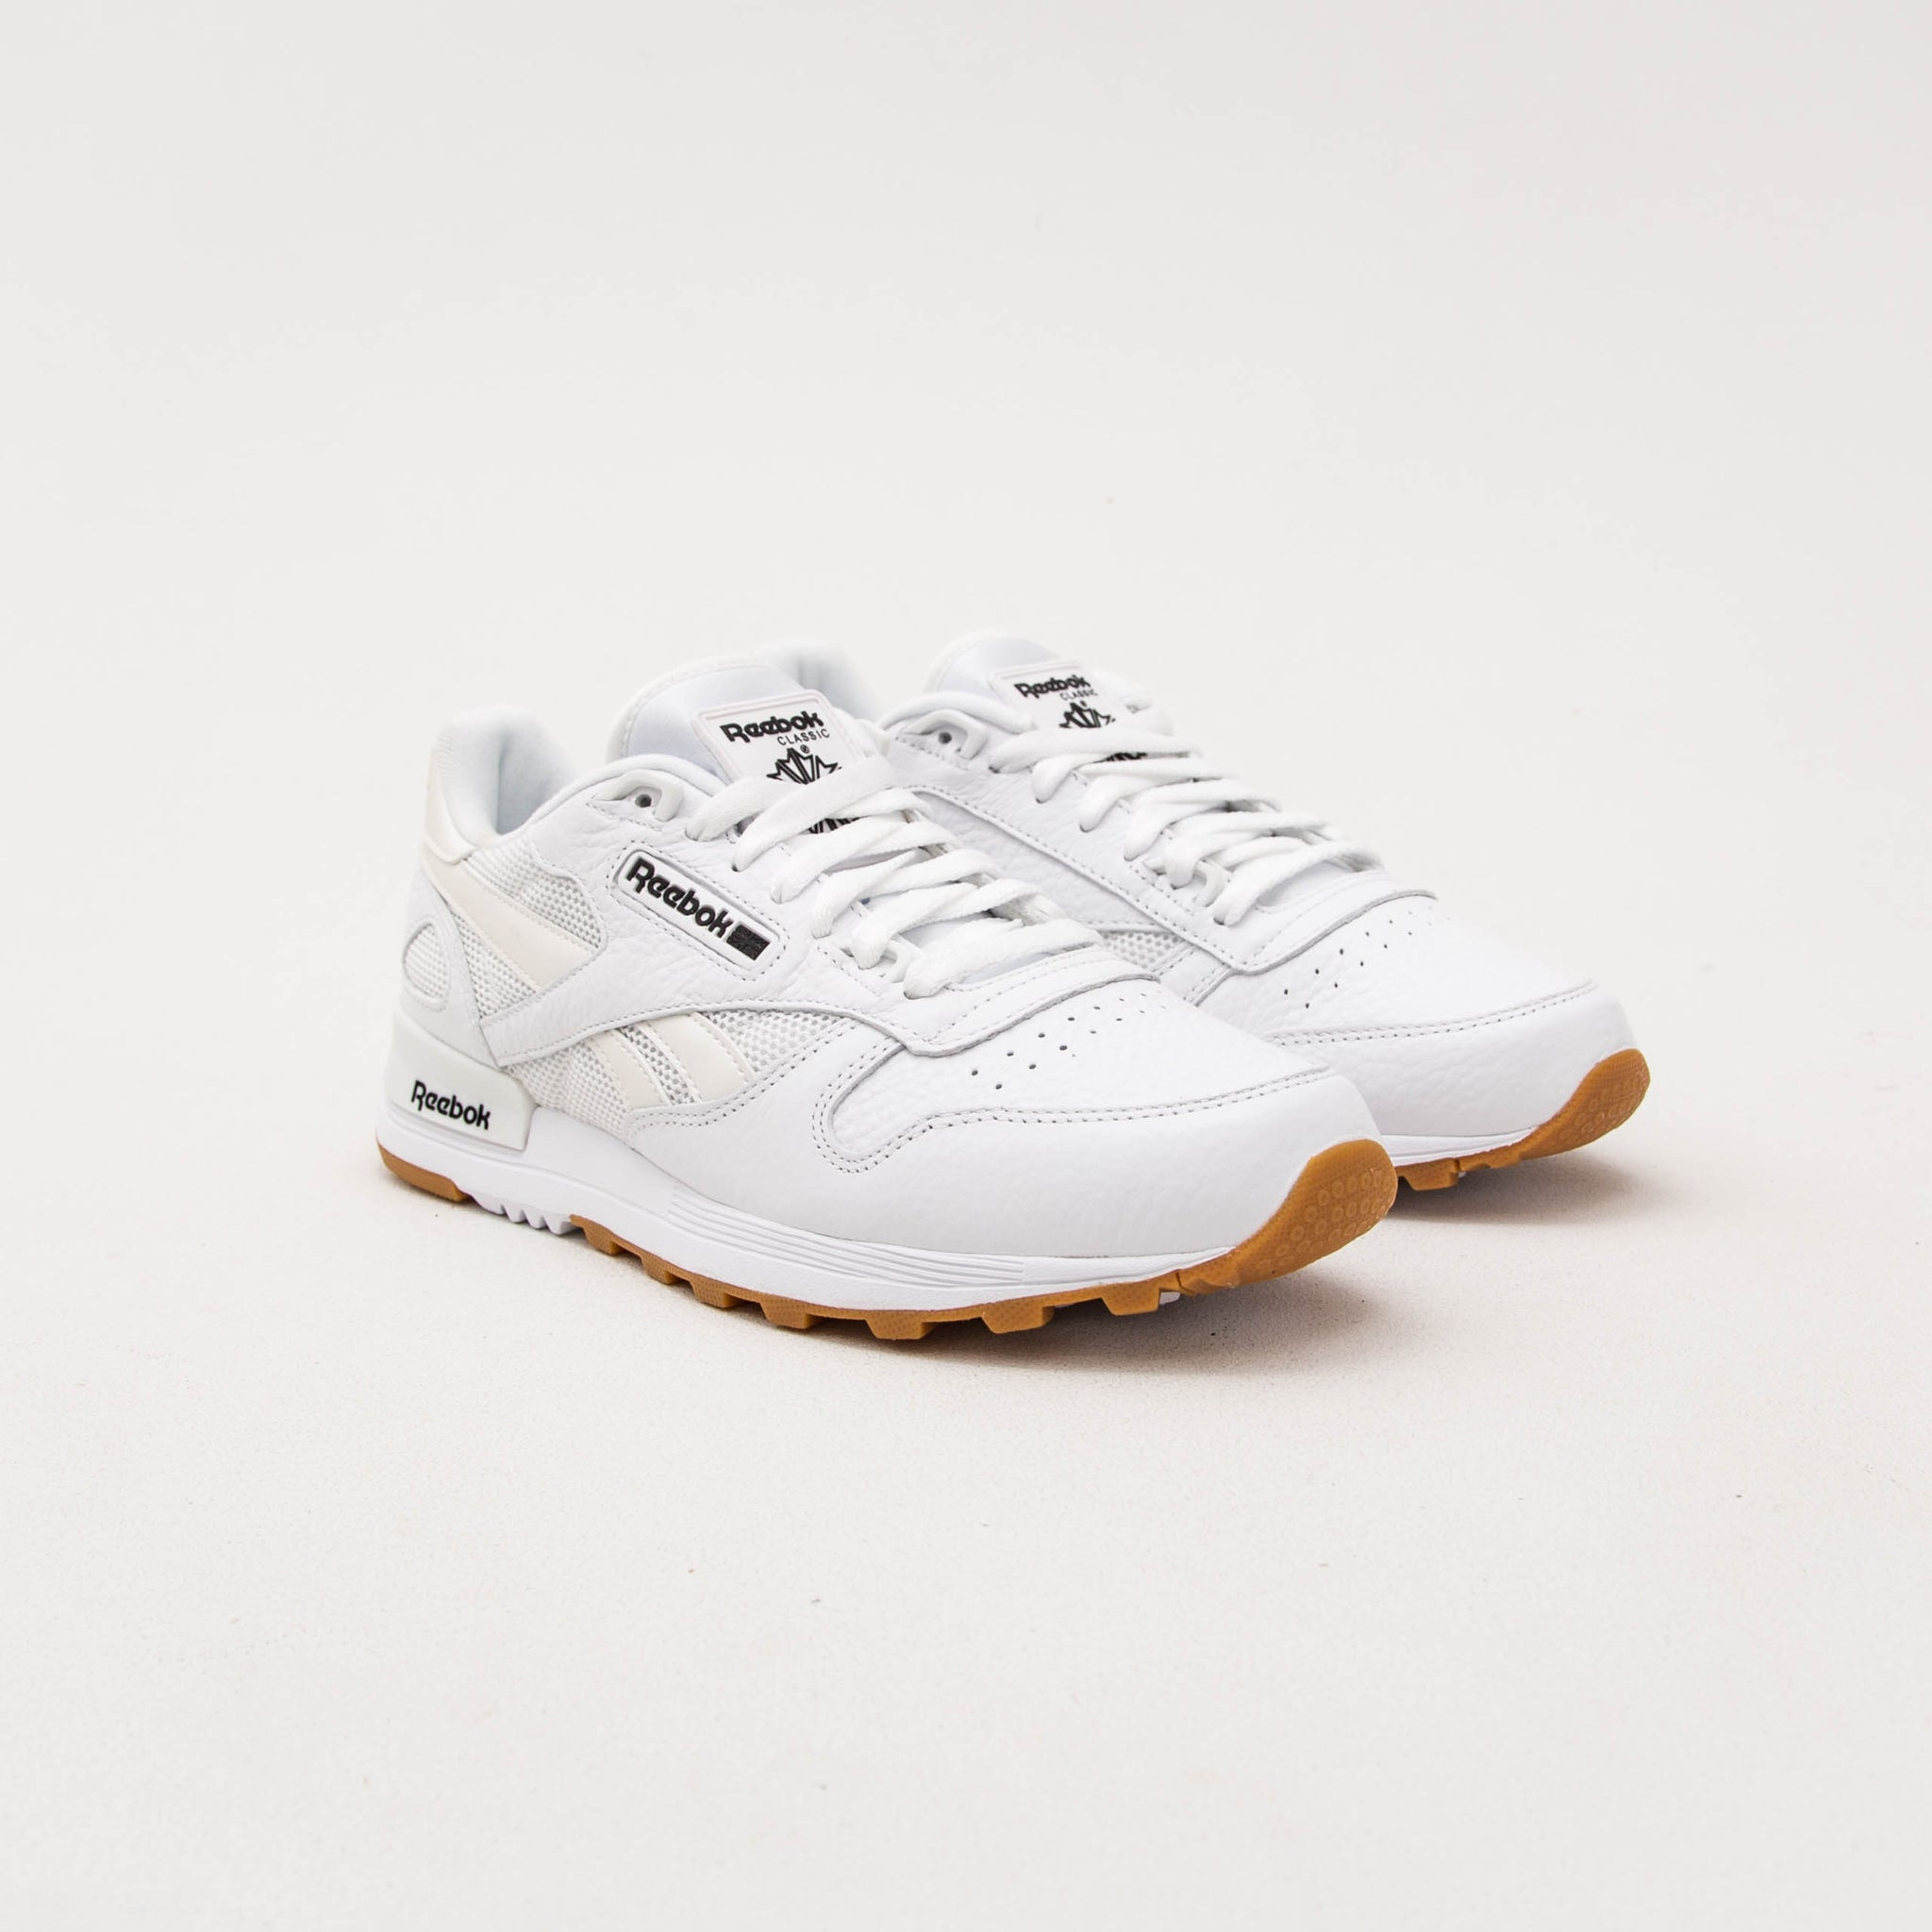 Reebok Classic Leather 2.0 Sneakers - White BS9004 | AStore